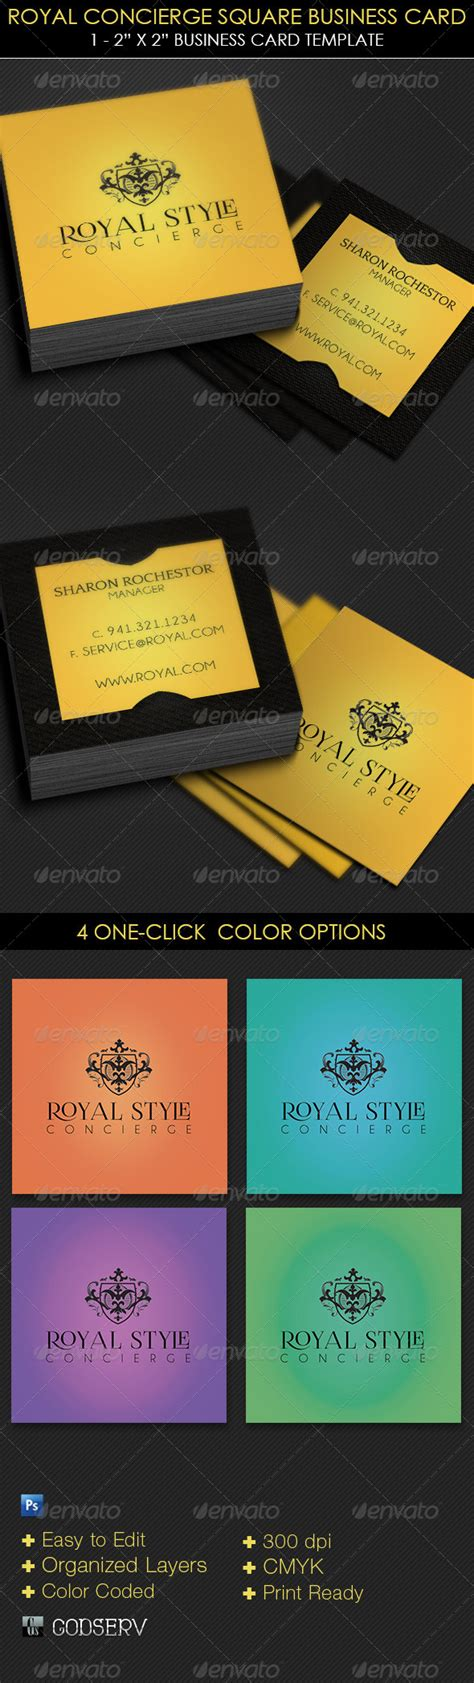 Royal Concierge Square Business Card Template By Godserv On Deviantart Square Business Card Template Free